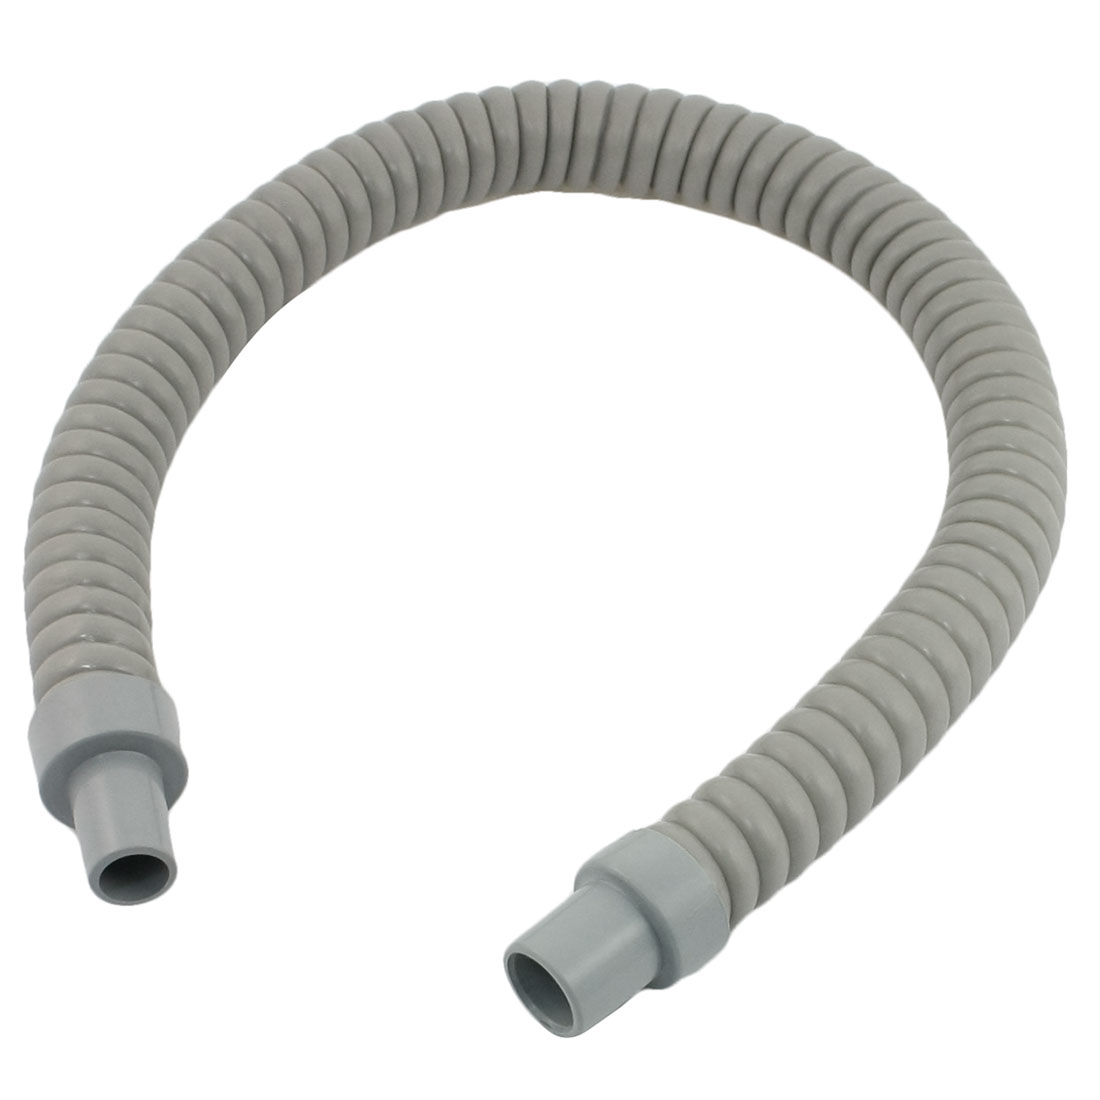 Gray Plastic Water Drain Pipe Hose 60cm Long for Air Conditioner